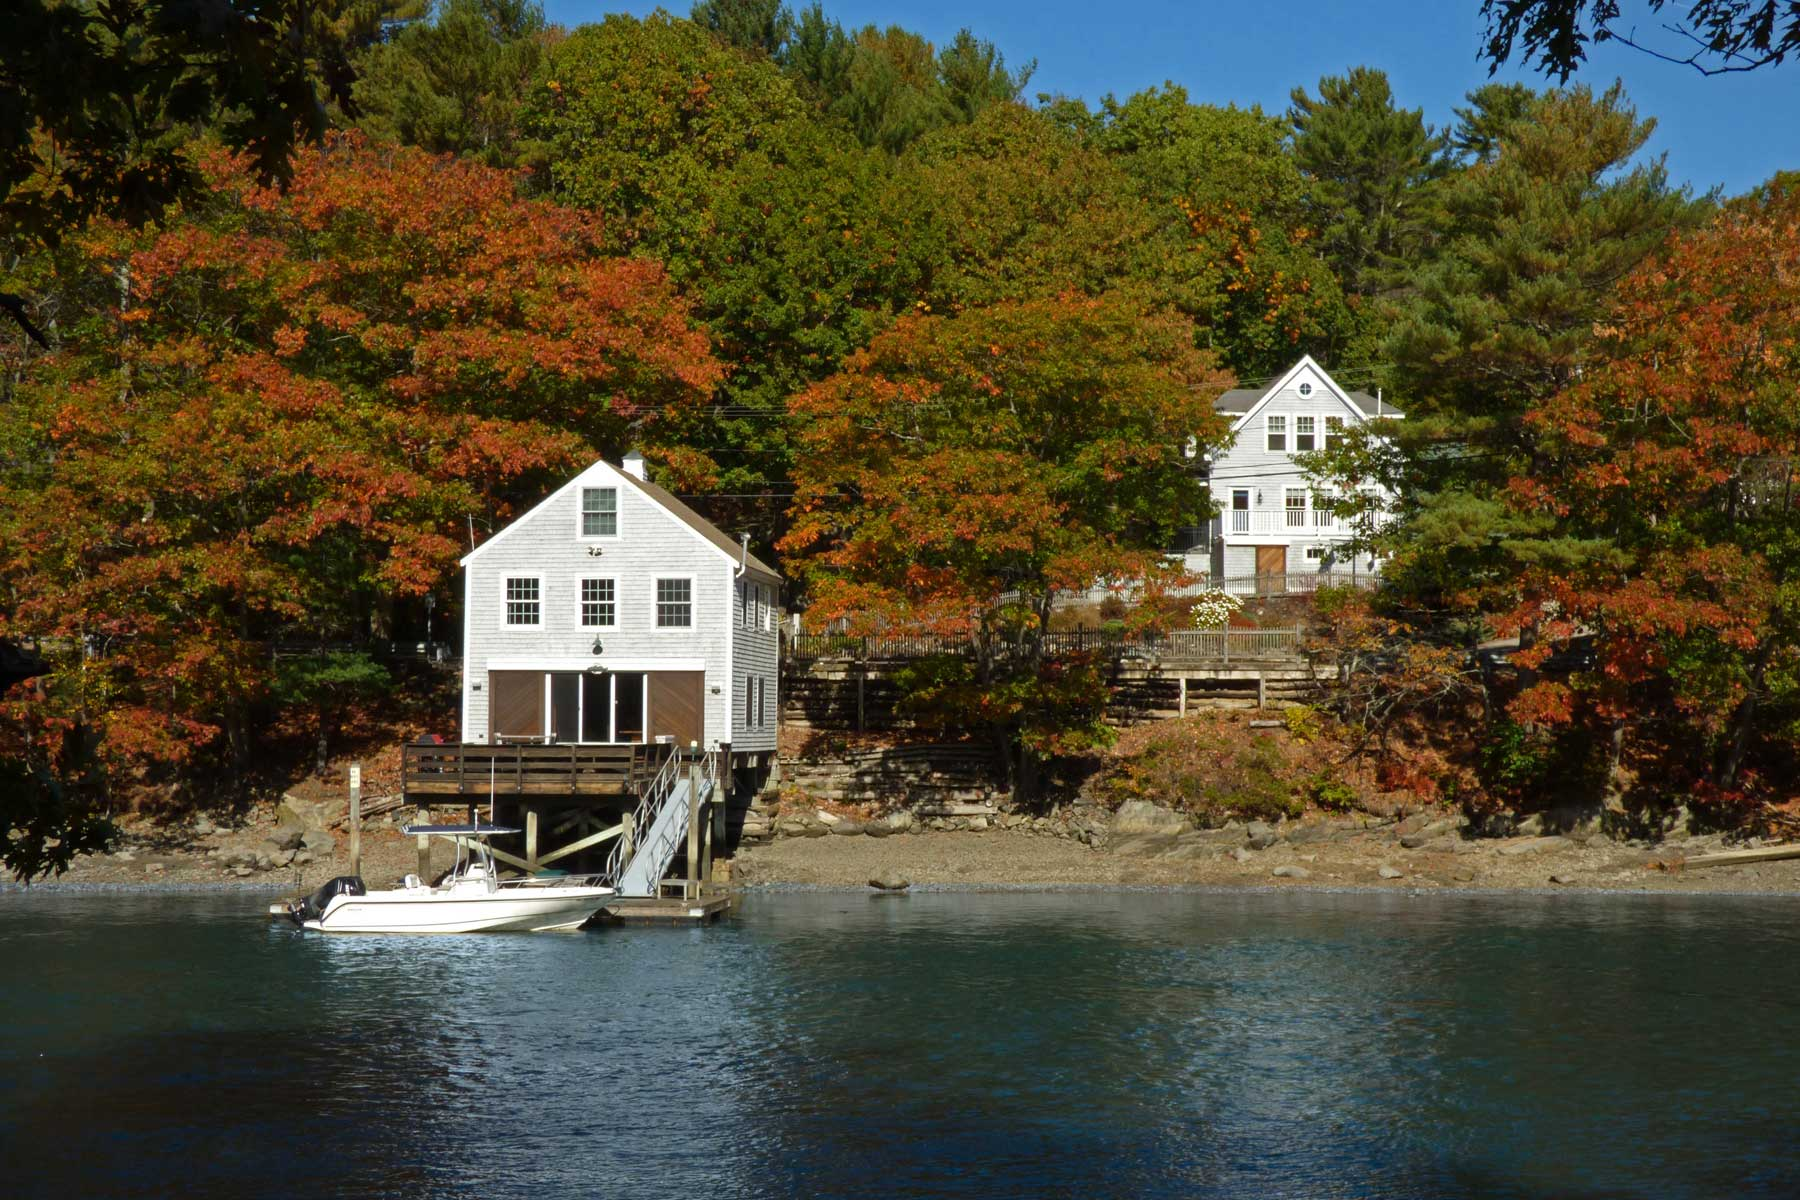 Single Family Home for Sale at Custom Cape and Boathouse in Kittery Point 22 & 23 Chauncey Creek Road Kittery, Maine, 03905 United States